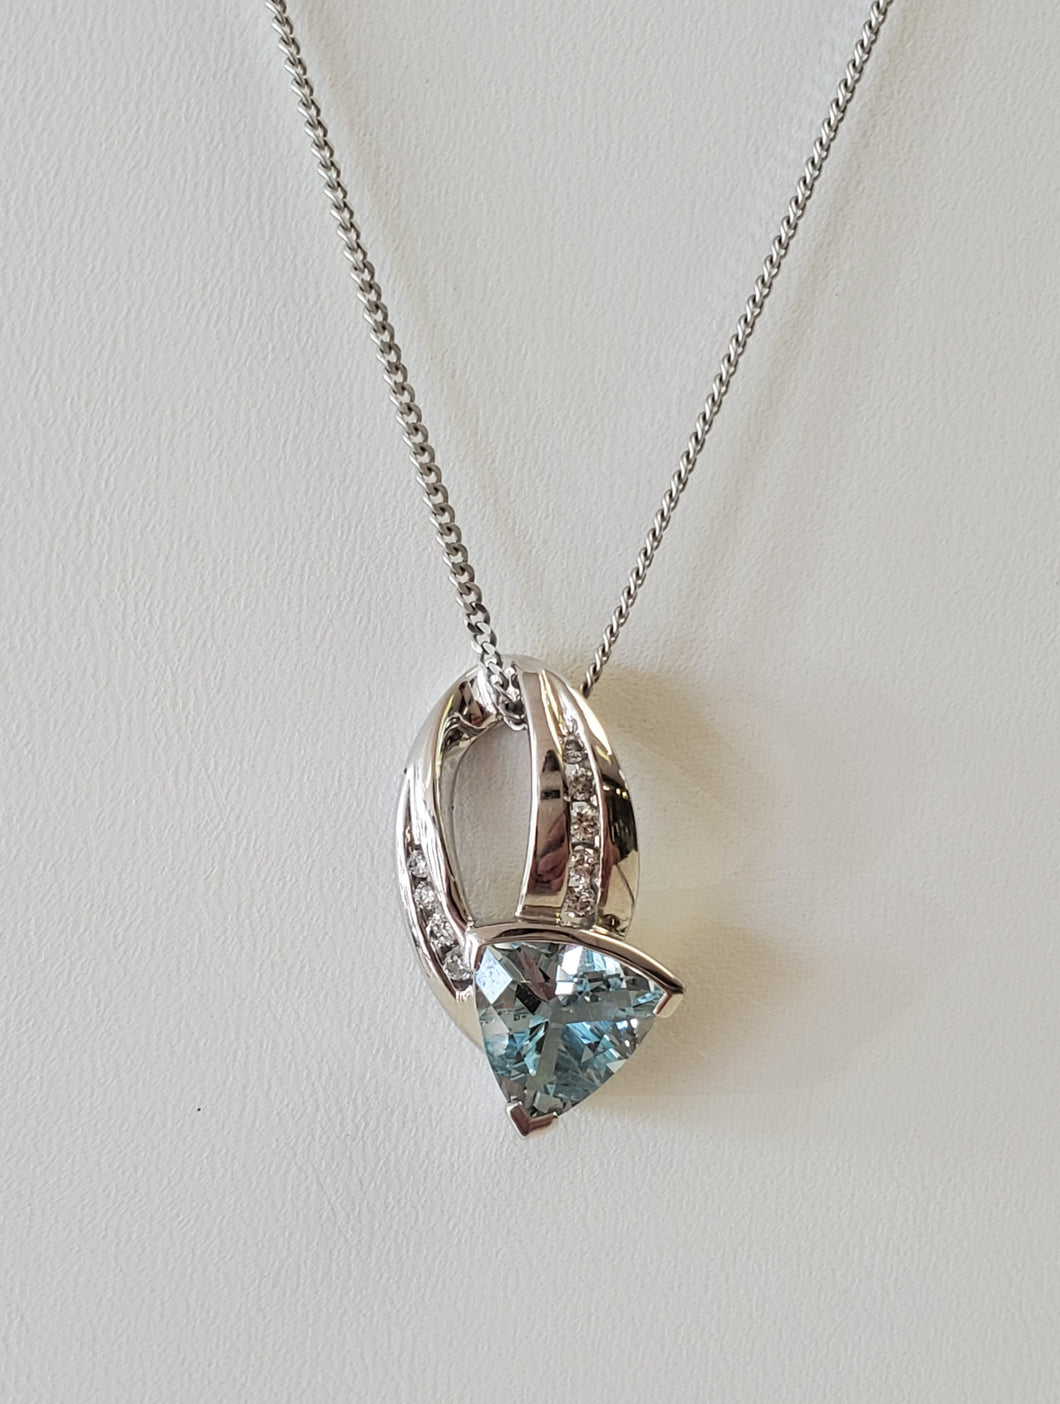 14k White Gold Trillion Cut Aquamarine and Diamond Necklace with Pendant